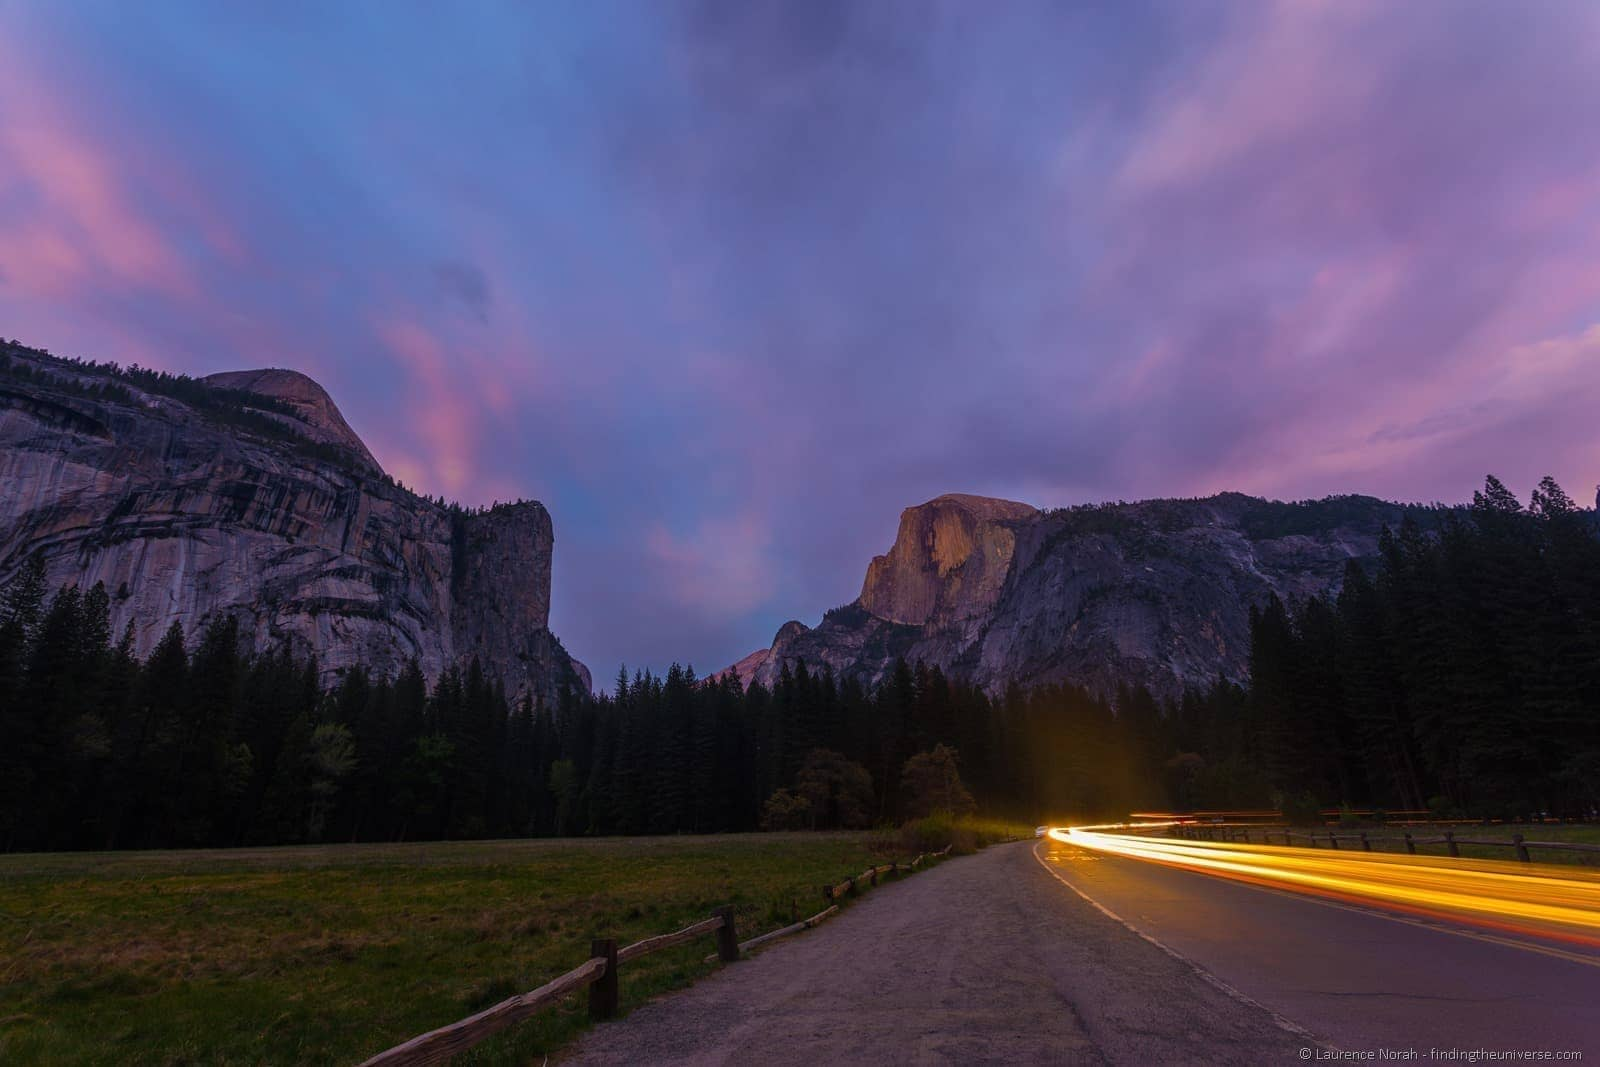 Lights and half dome yoesmite sunset